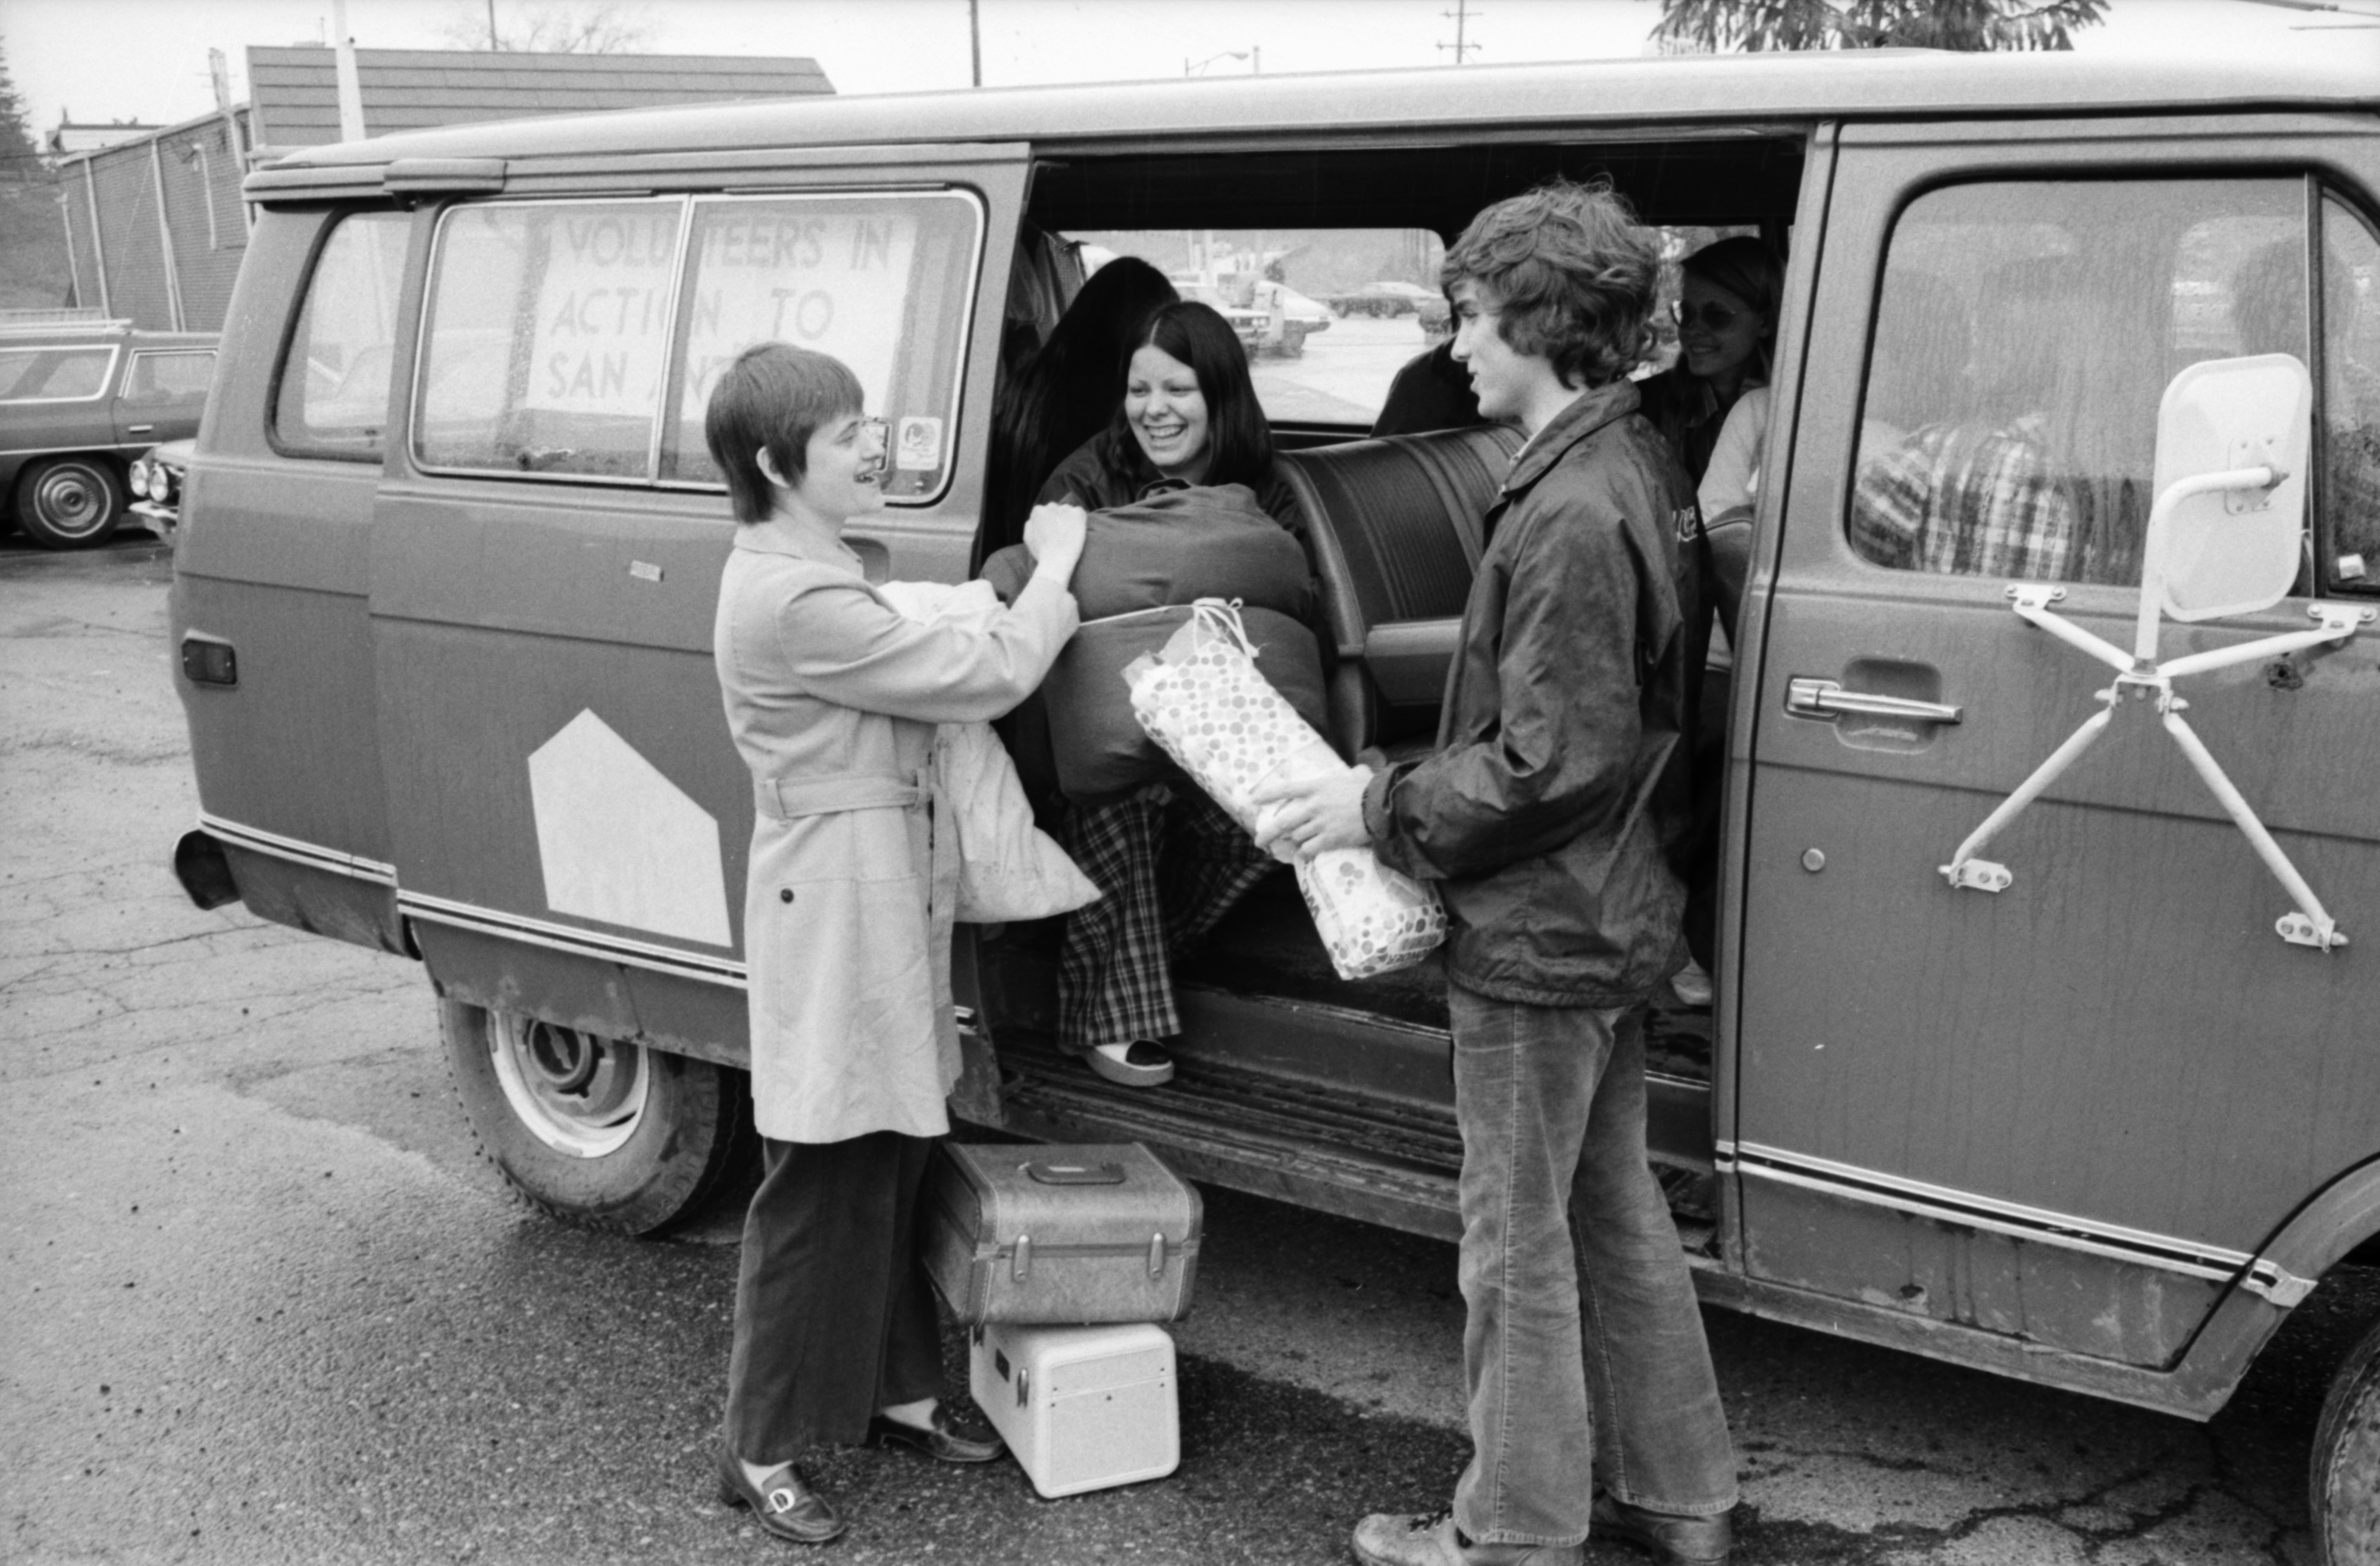 Free Methodist Church Group Leaving For Volunteers in Action Program In Texas, April 1974 image